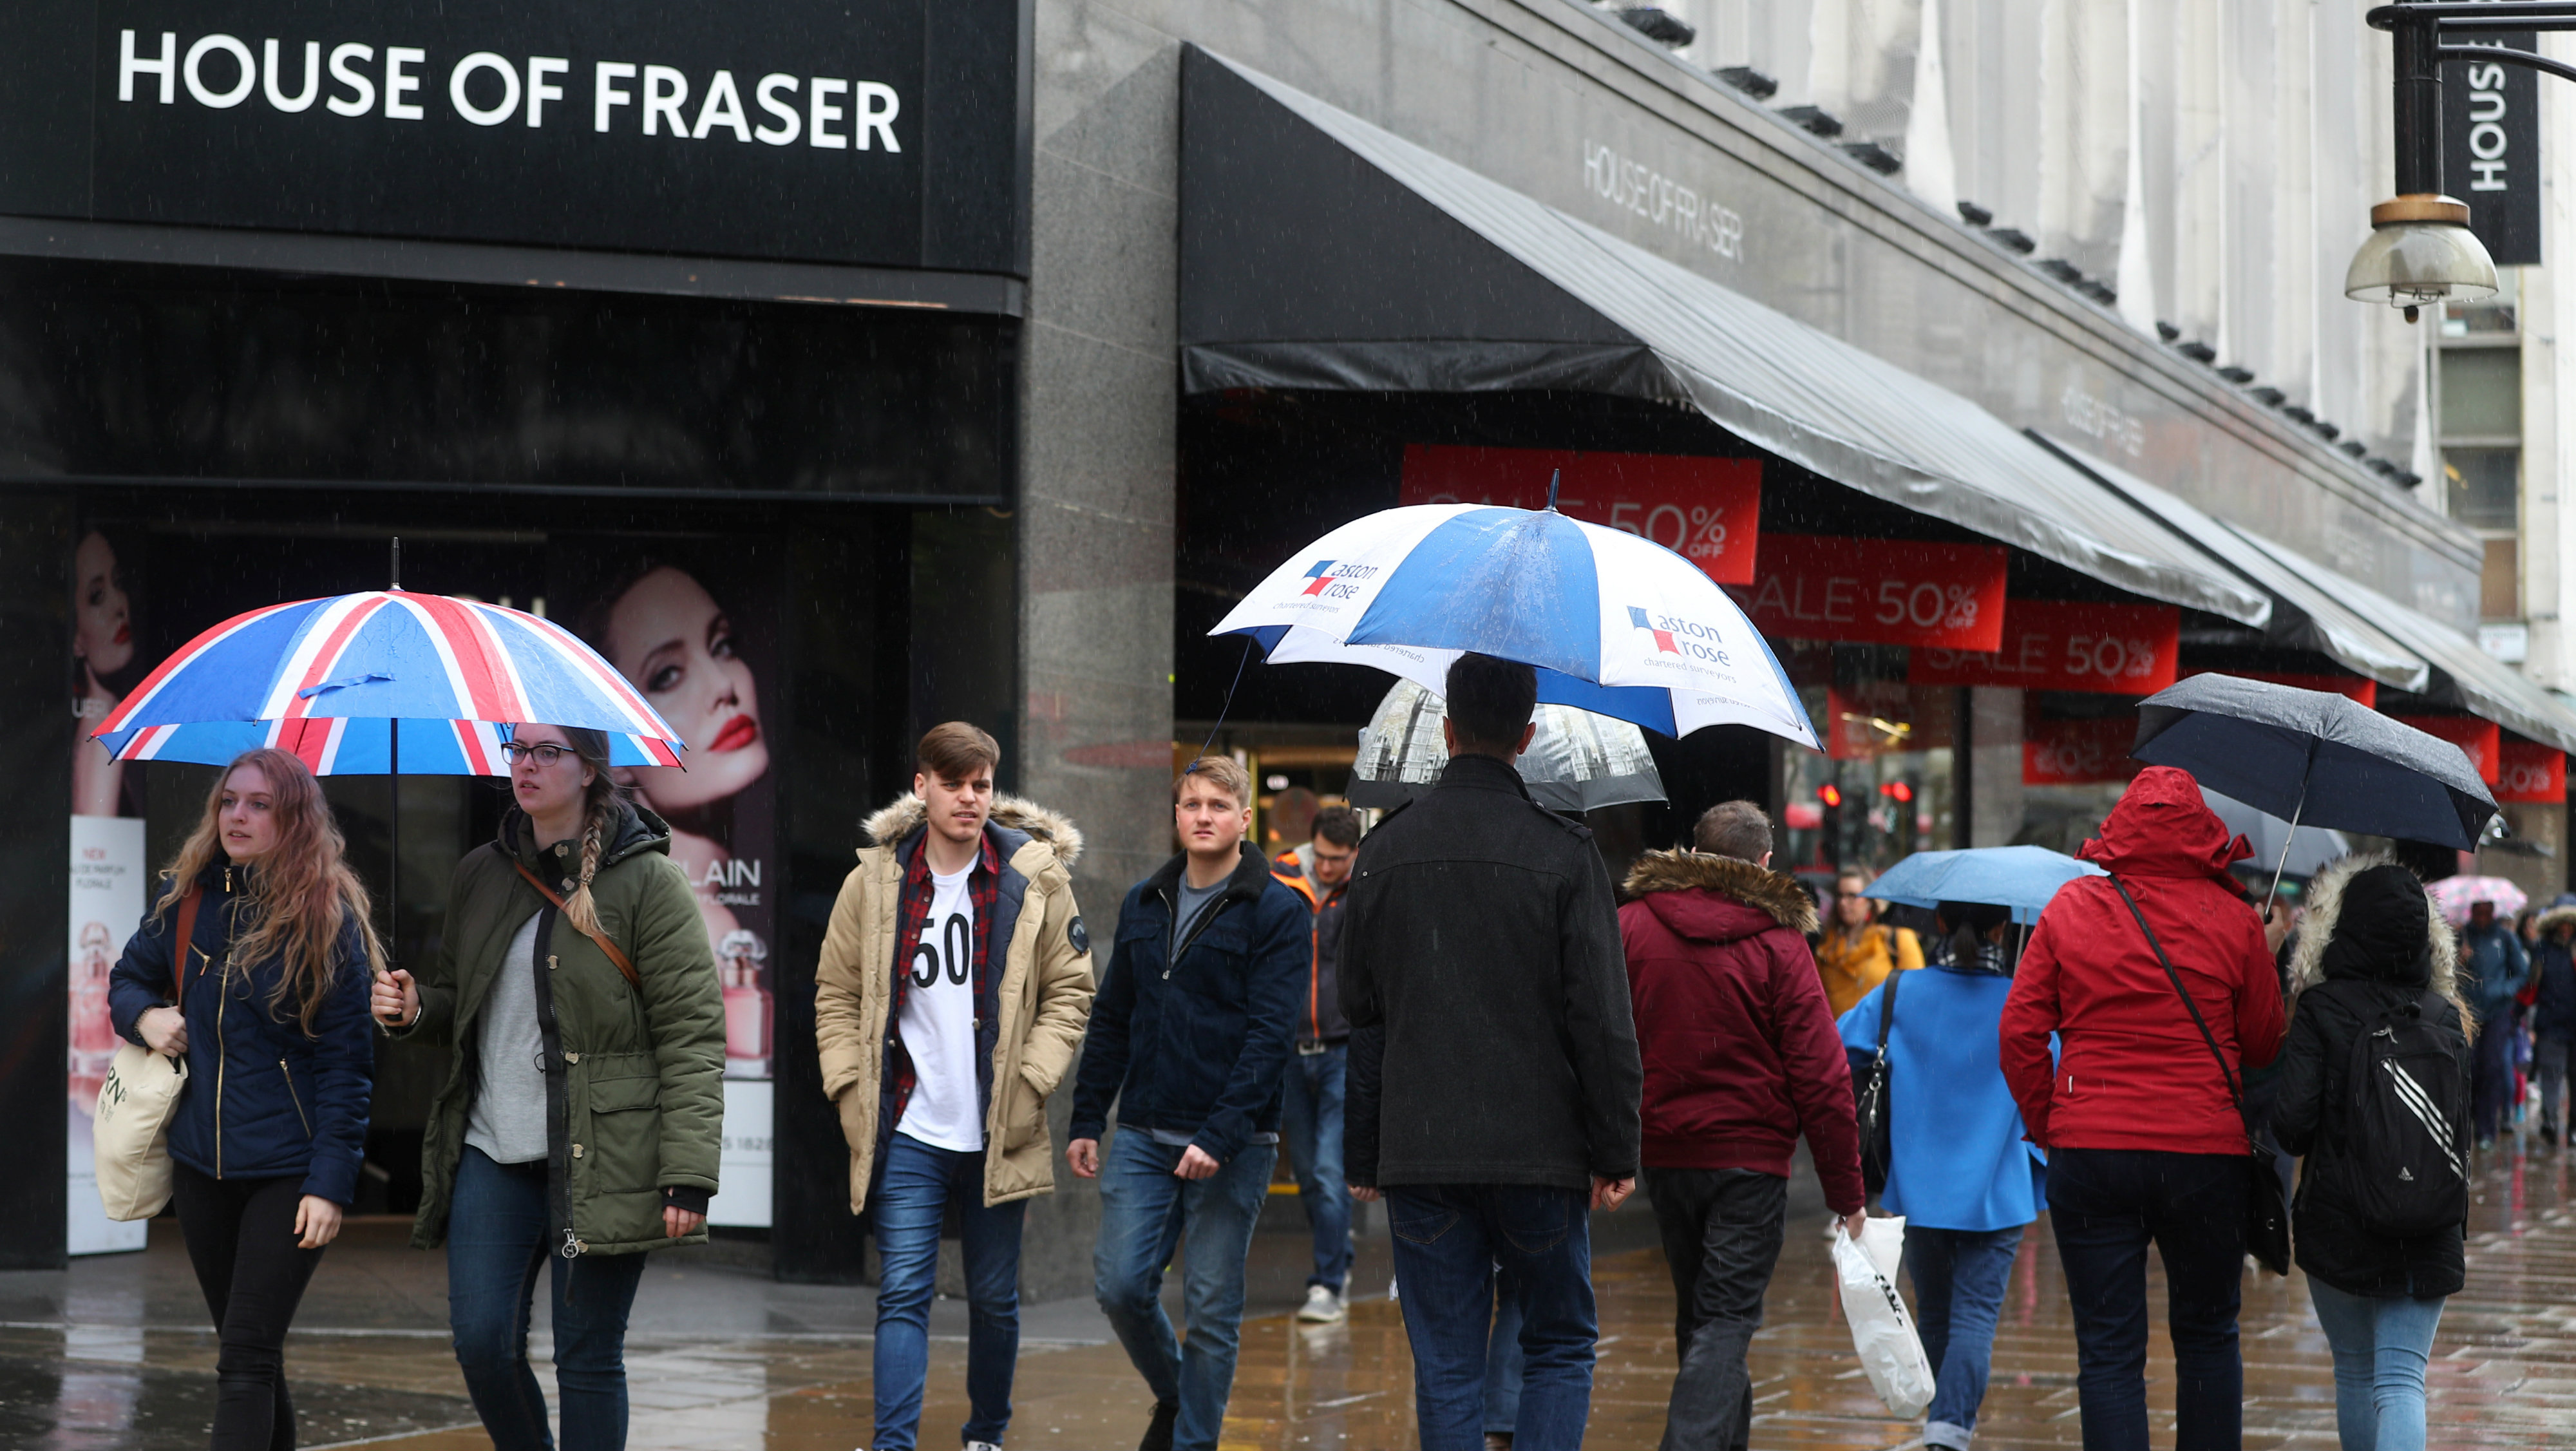 Shoppers walk past House of Fraser on Oxford Street in central London